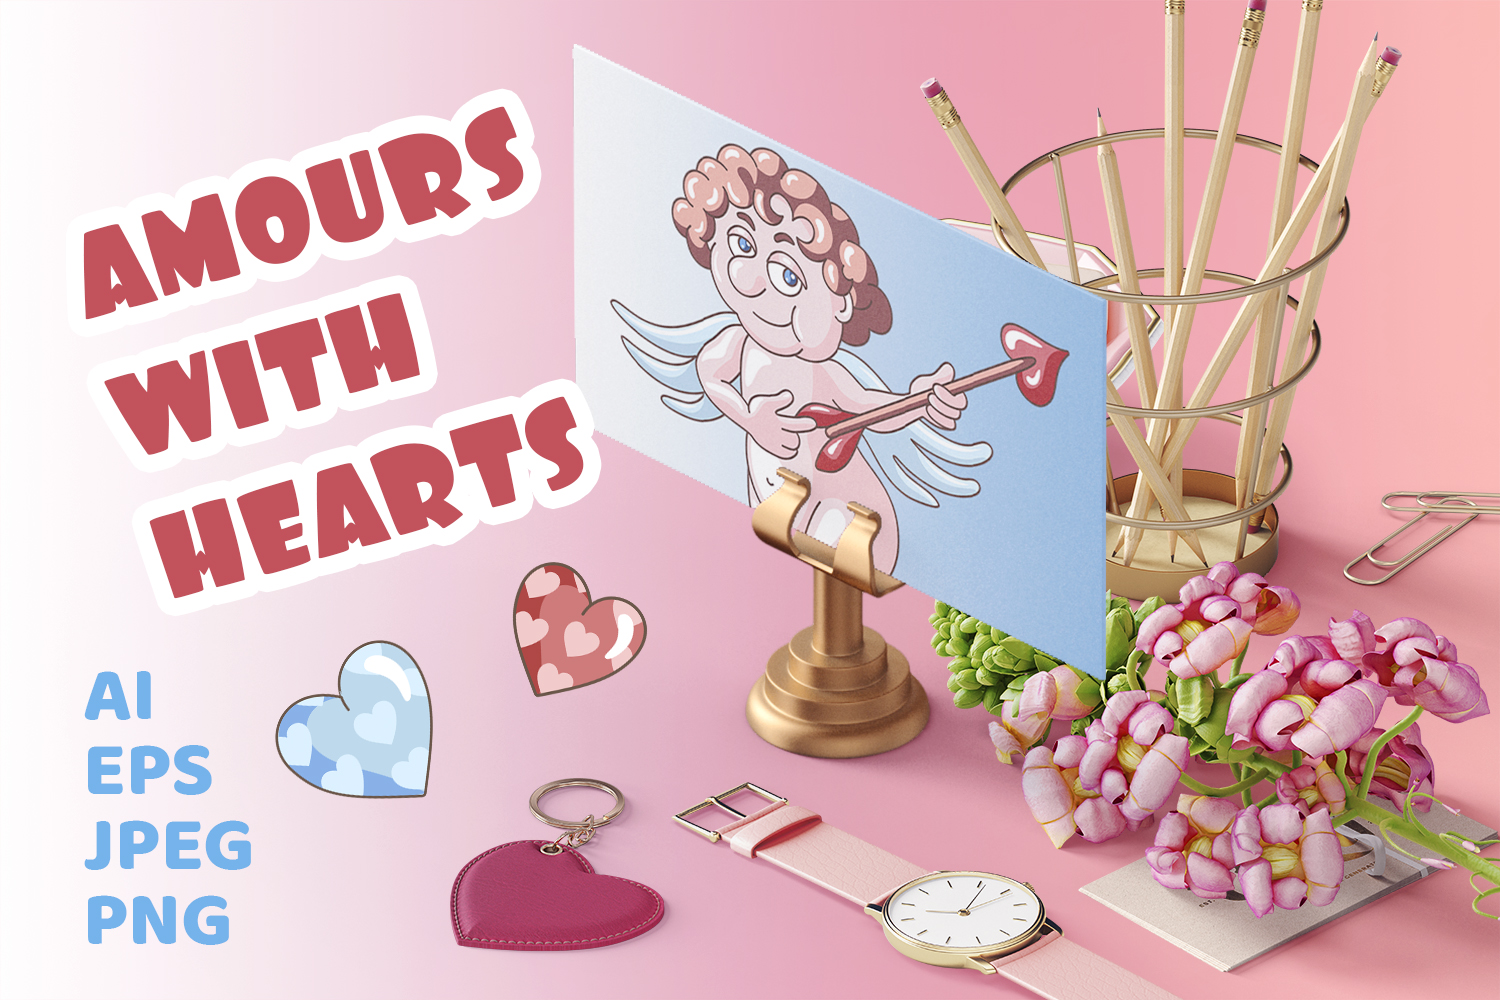 Amours with hearts example image 1